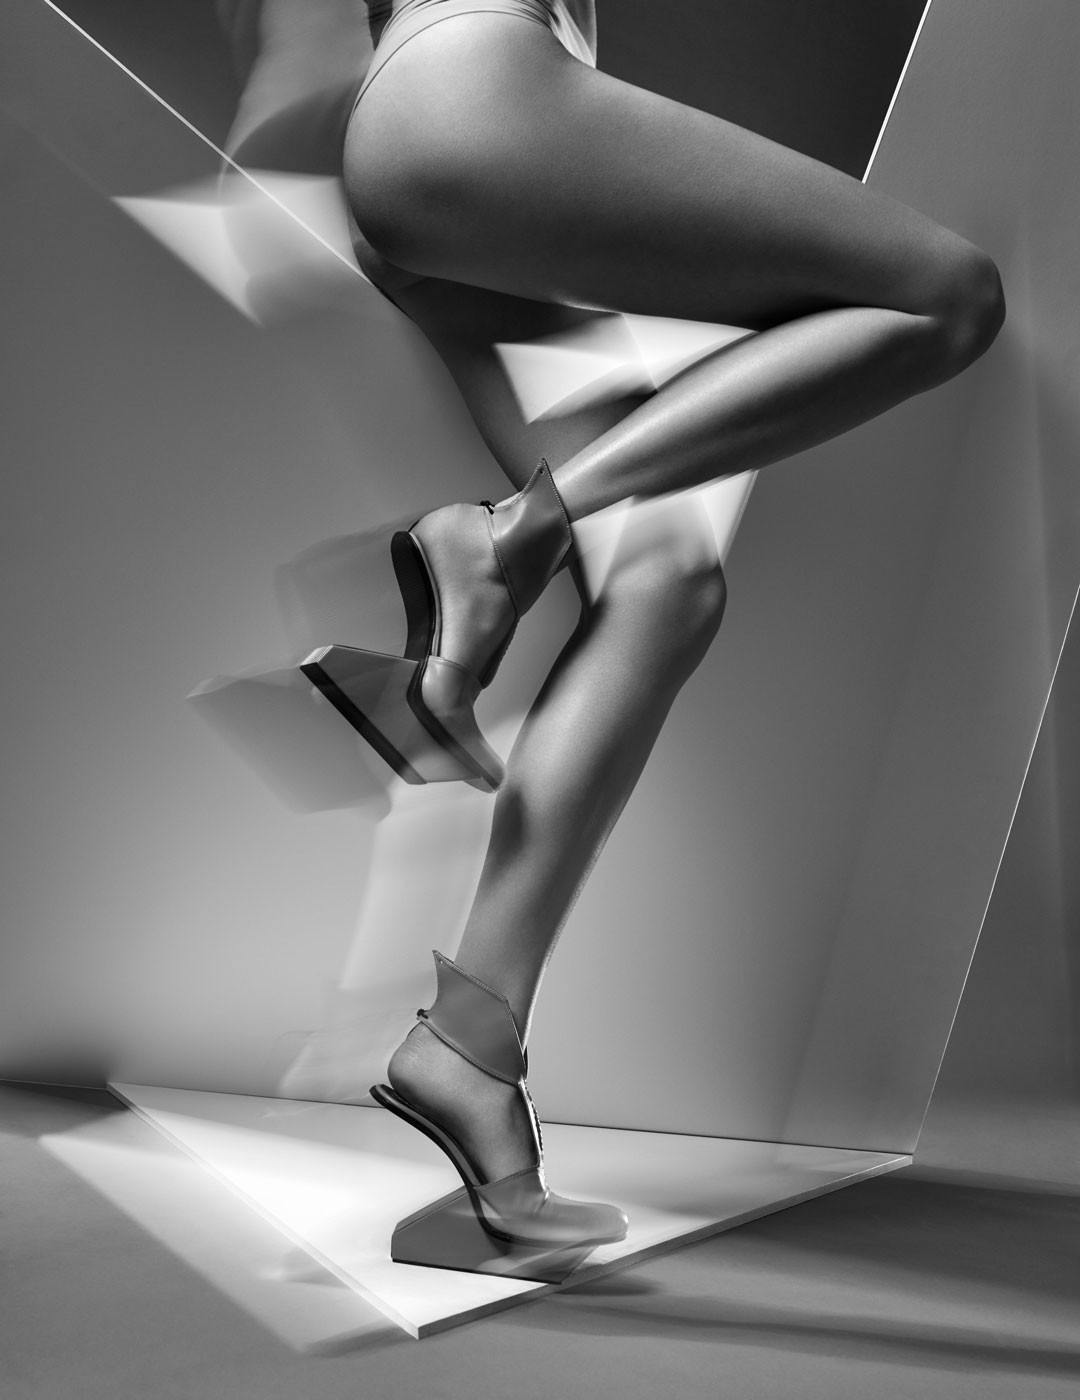 <BODY>Carolin Holzhuber, <em>SYNCHRONICITY_SYNC 6</em>, Synchronicity FW 19/20<br />© Warren Du Preez and Nick Thornton Jones</BODY>